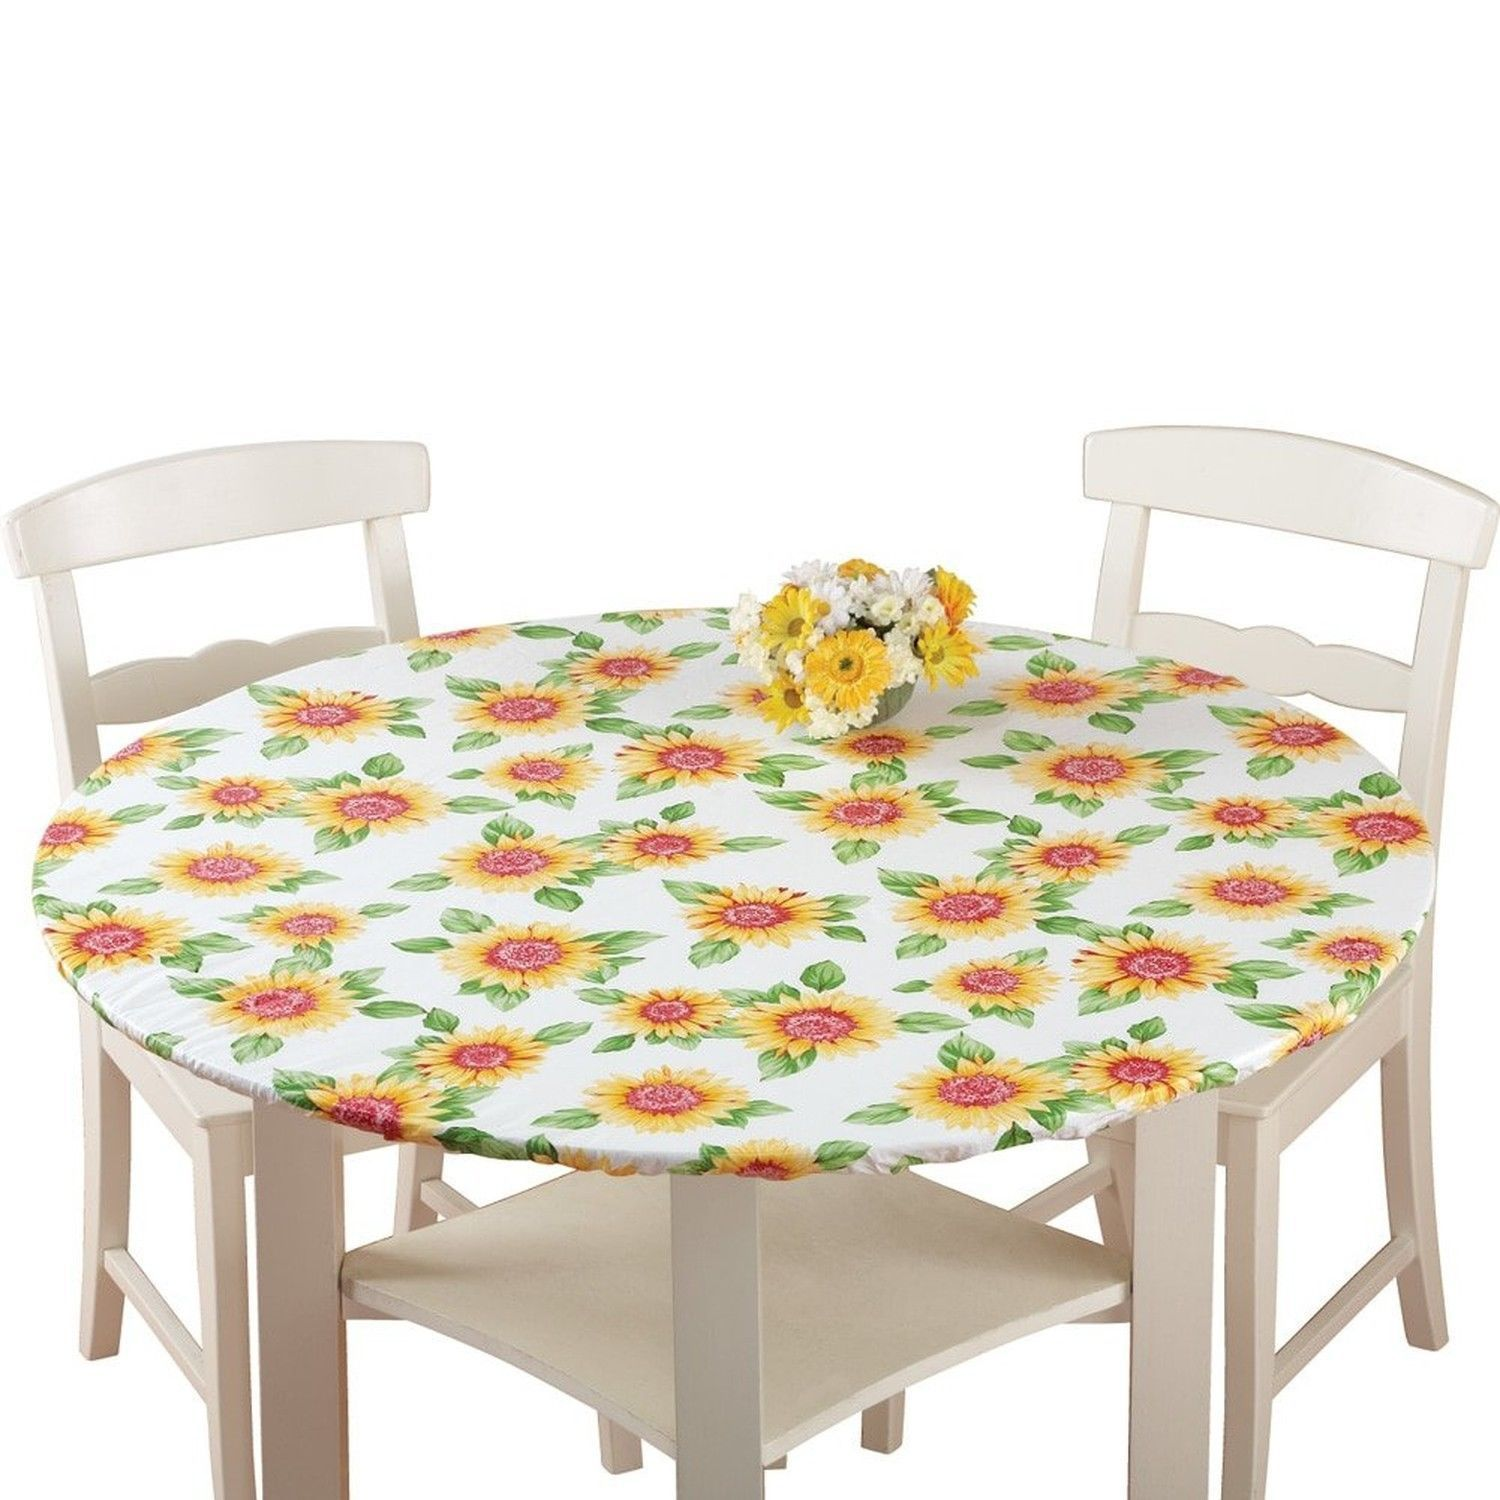 Round Plastic Table Covers With Elastic Details About Fitted Elastic Table Cover Strawberries Oval